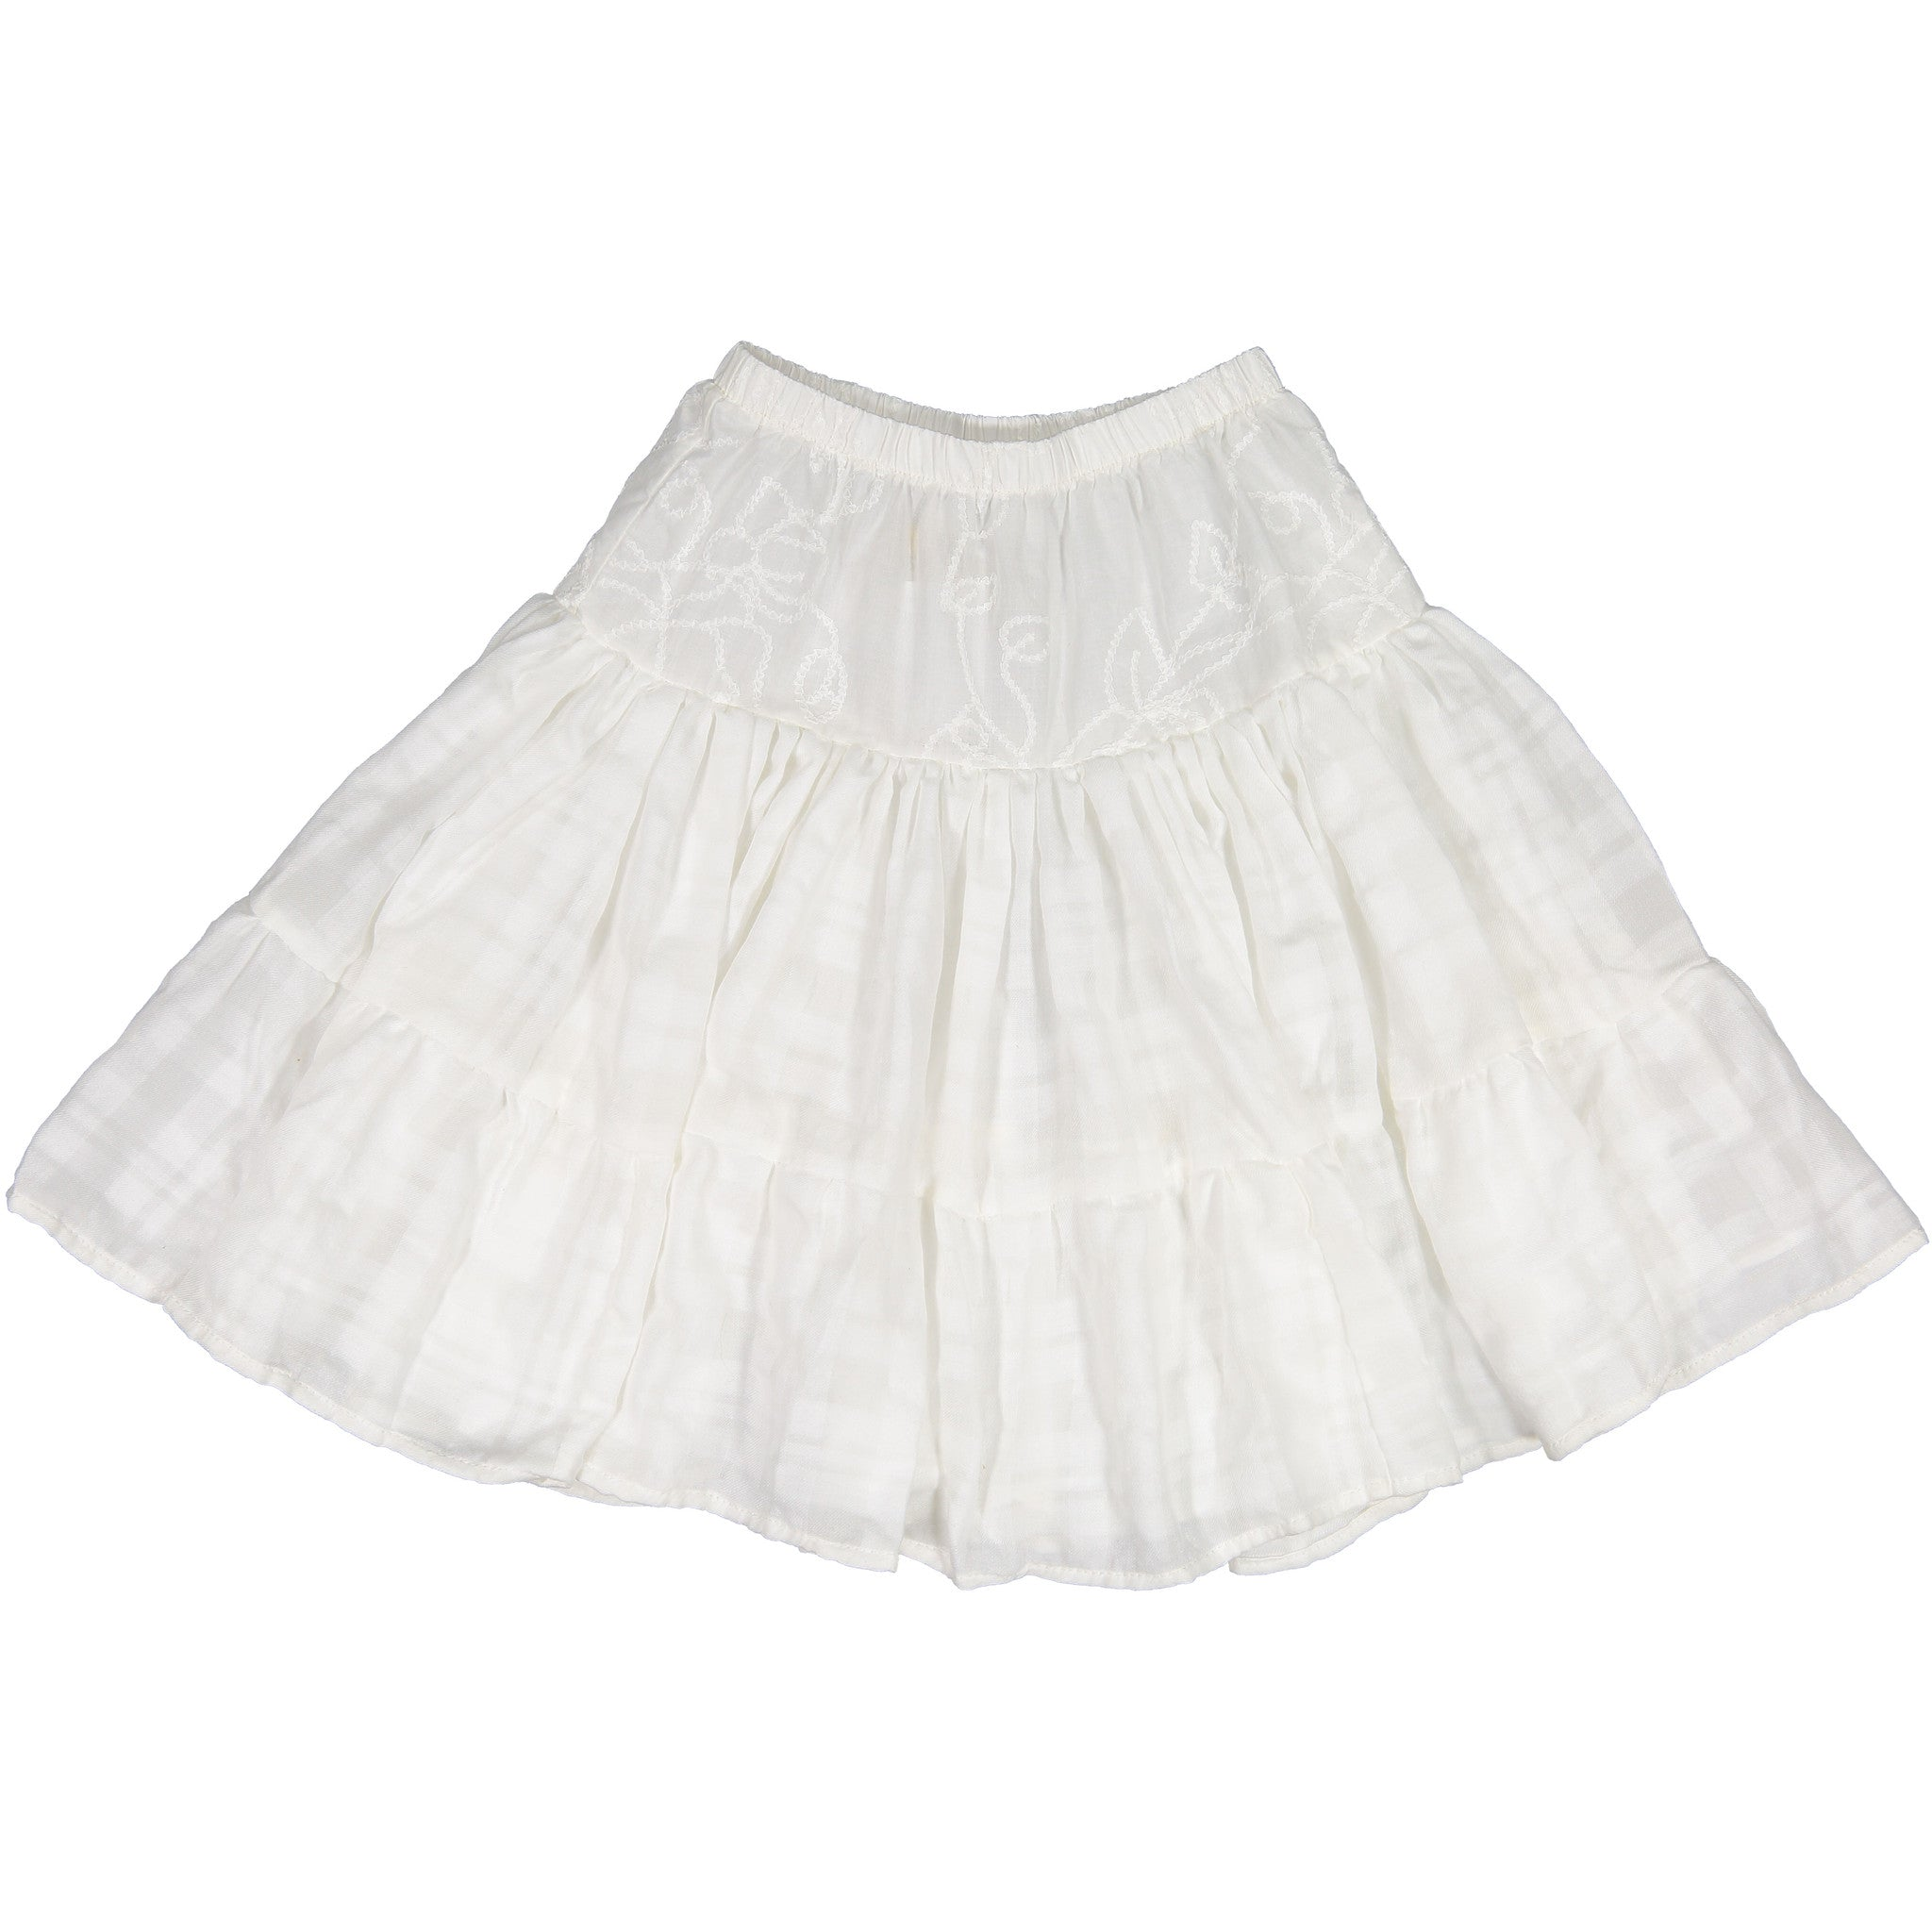 Atelier Barn White Tiered Embroidered Skirt